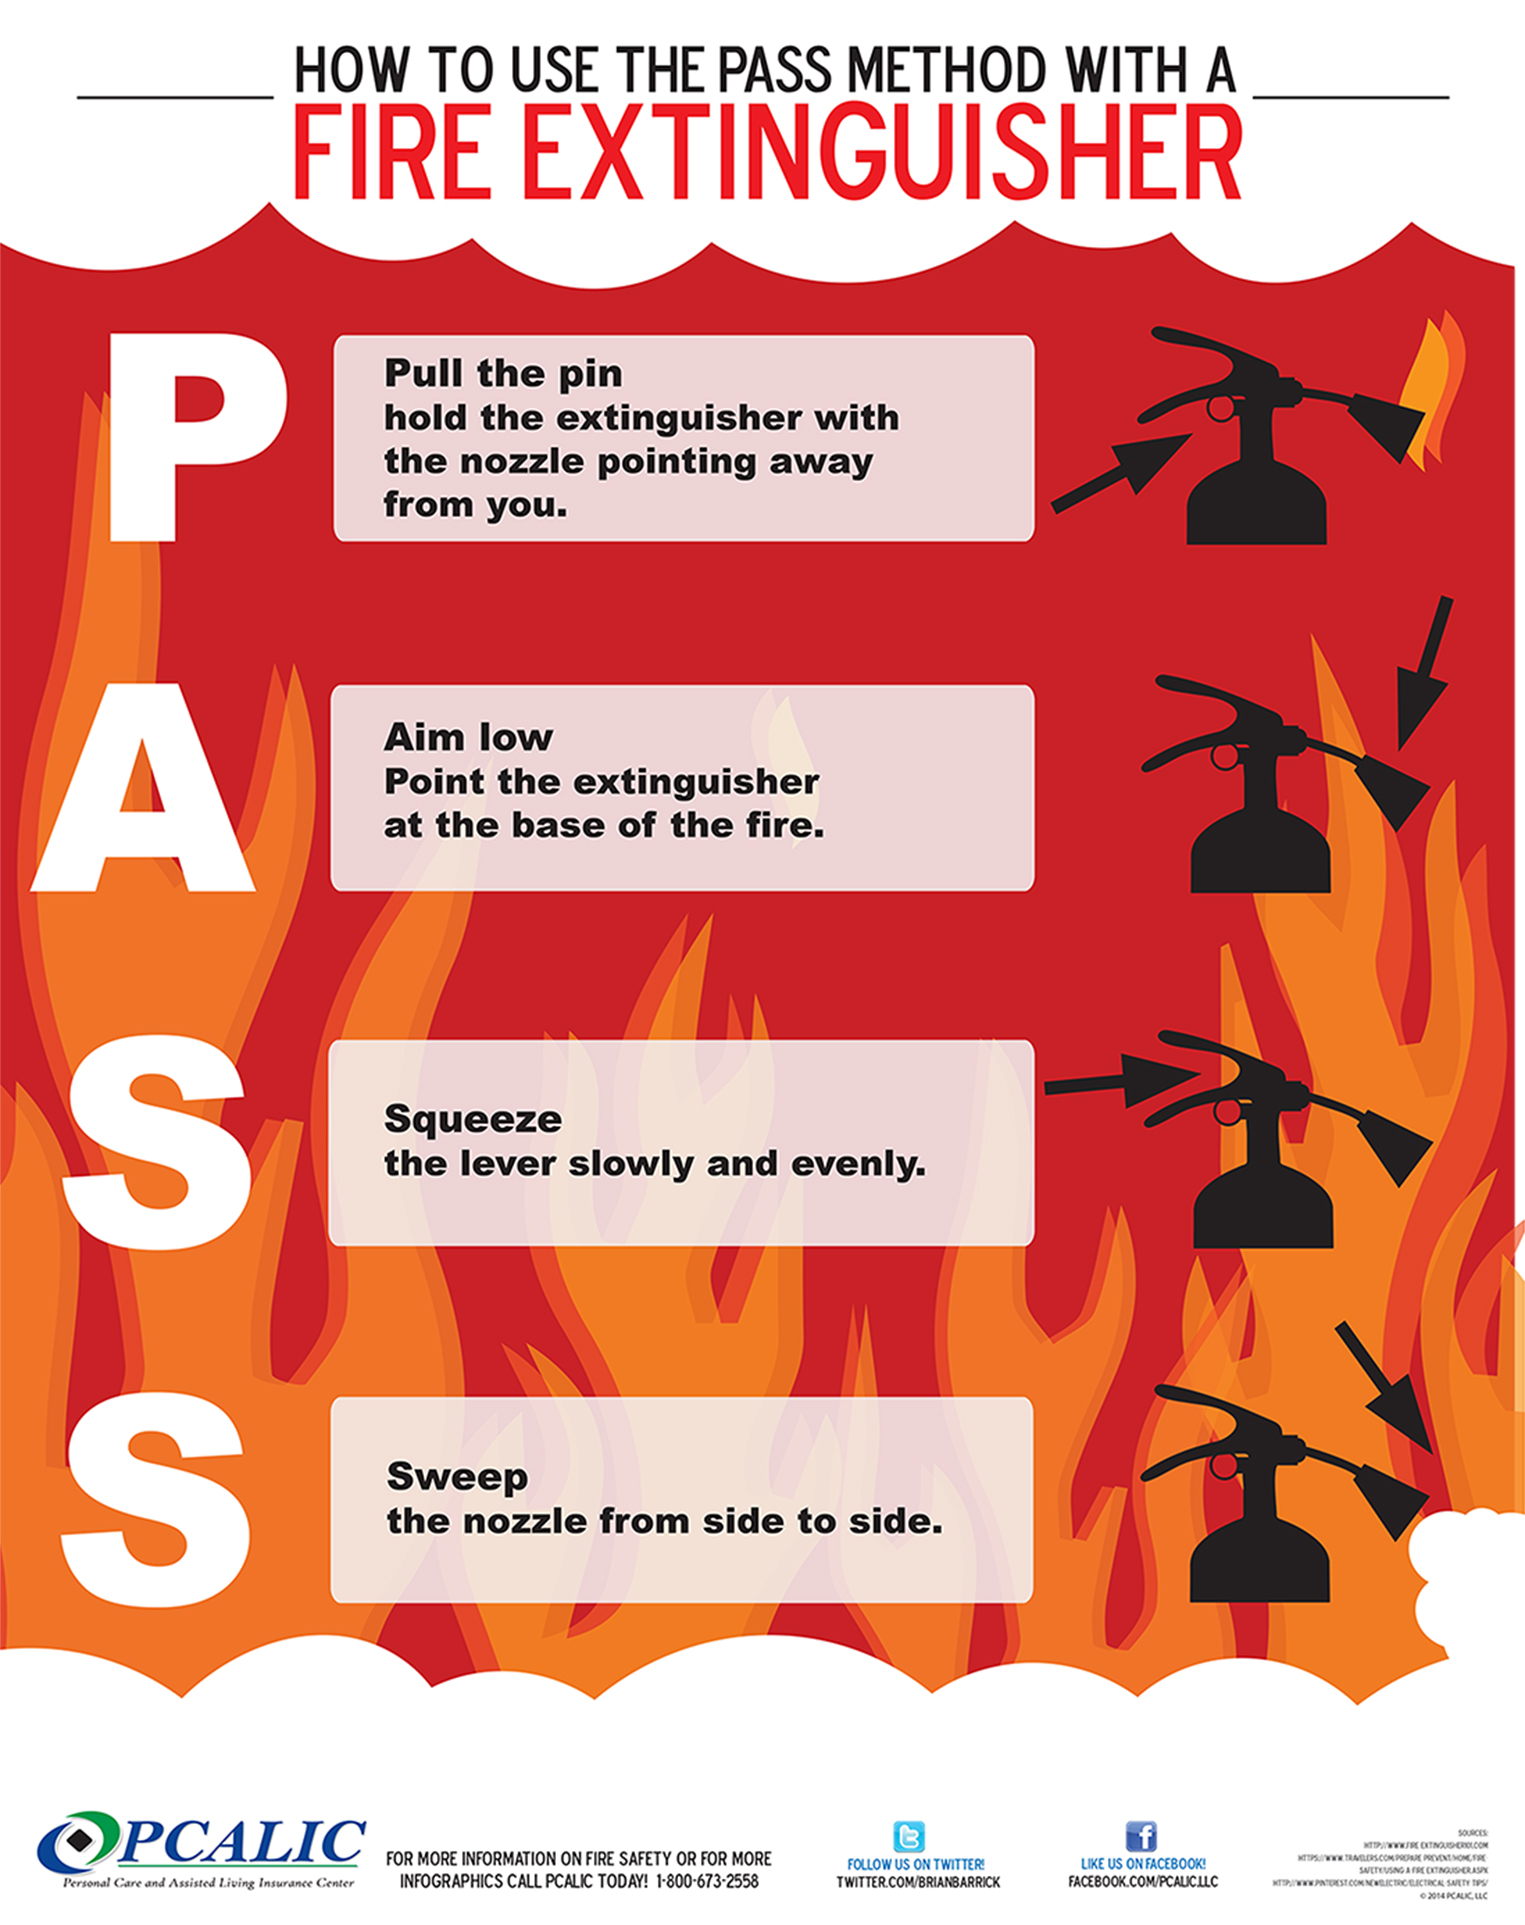 How to us pass method with a Fire Extinguisher